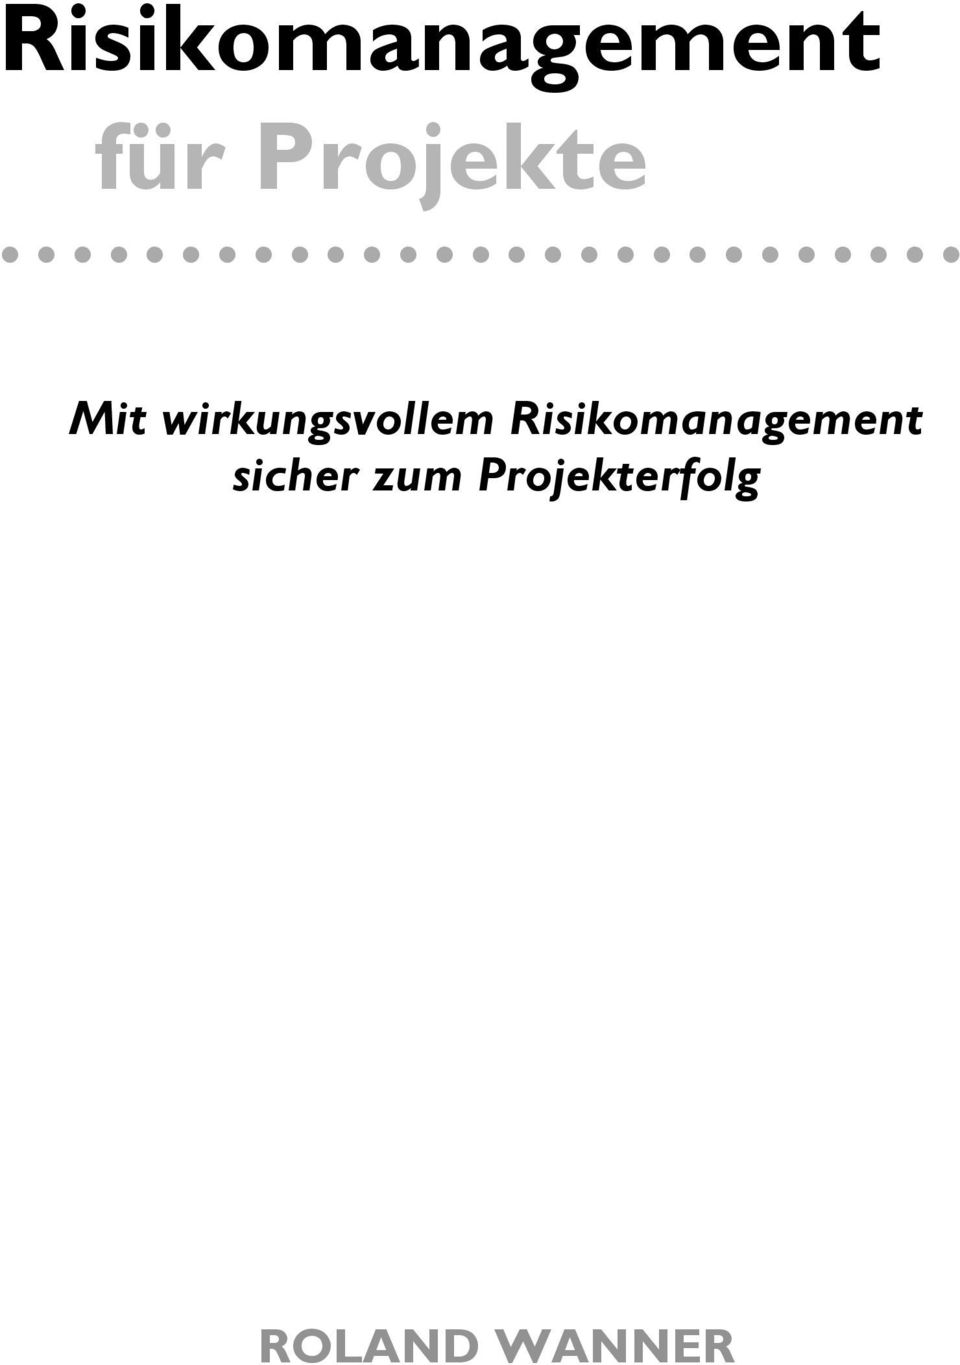 Tolle Vorlagen Risikomanagementplan Bilder - Entry Level Resume ...